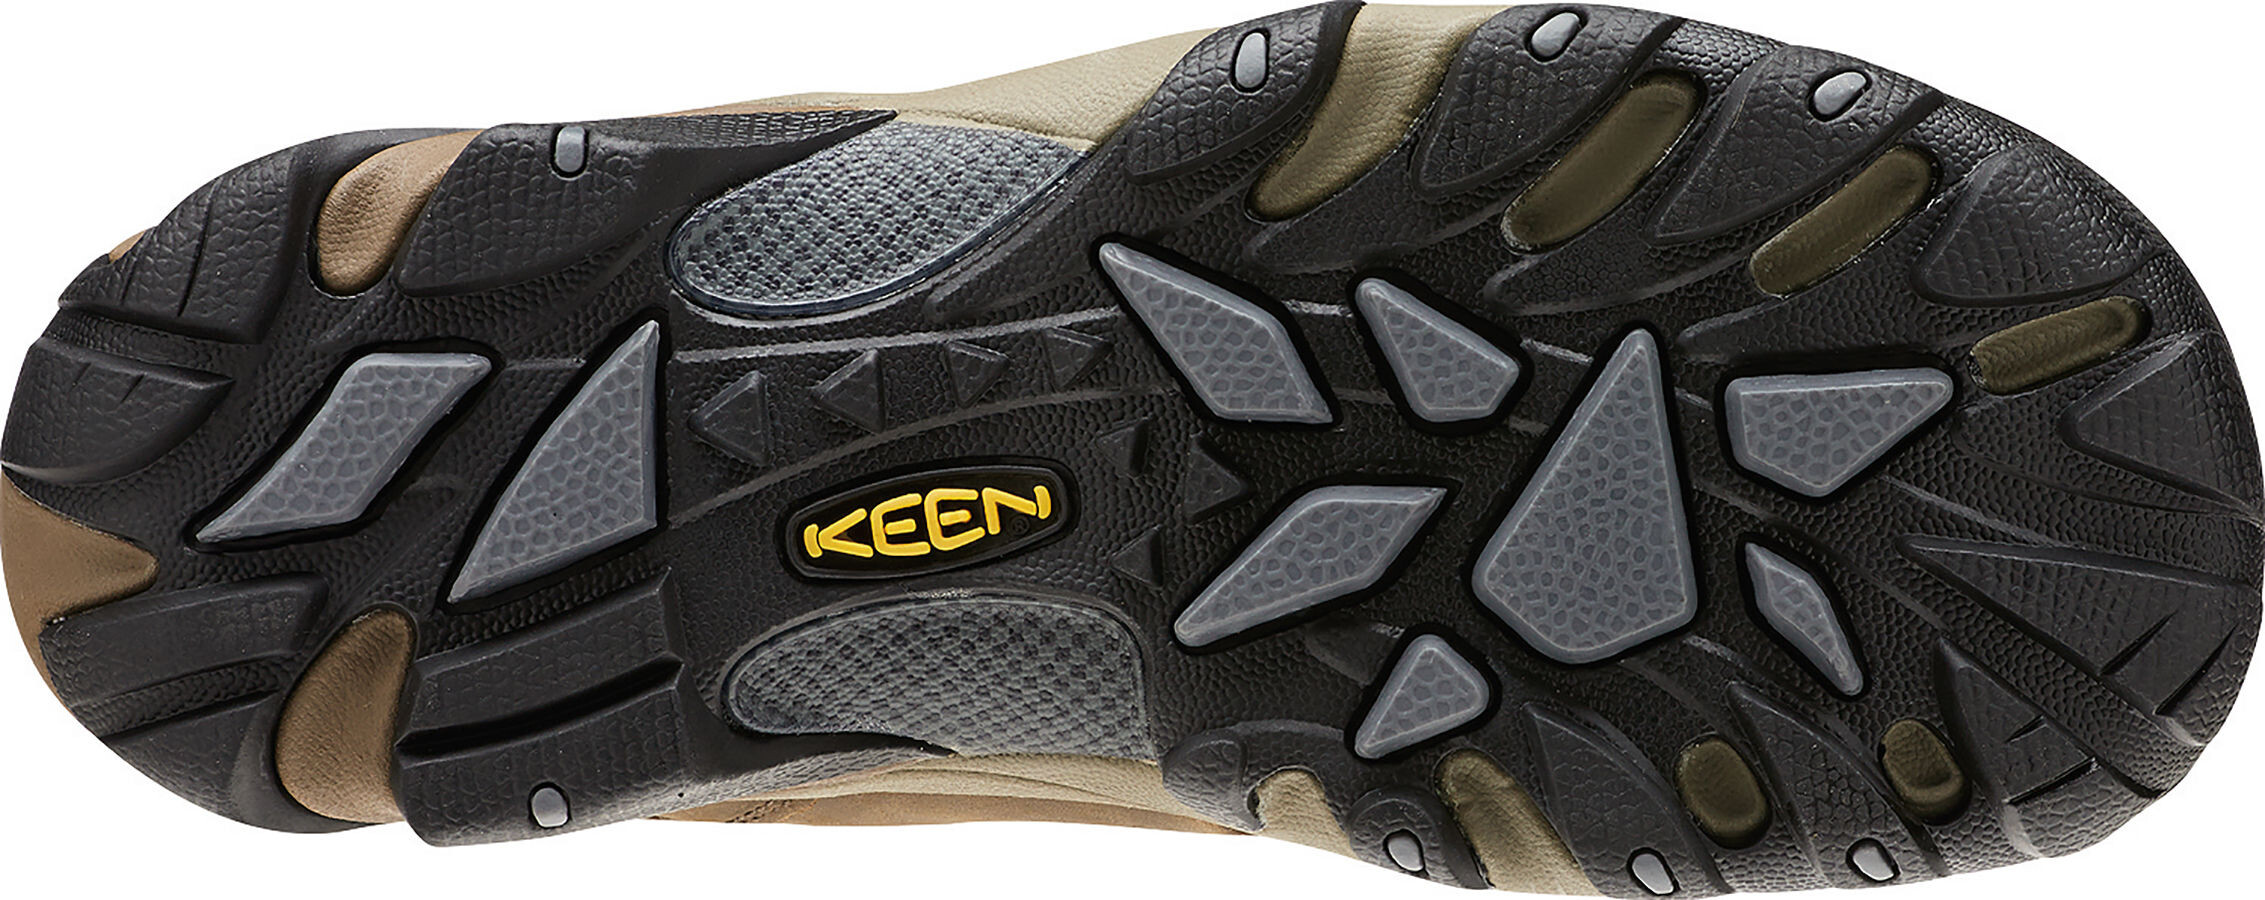 Keen Flint Shoes For Women